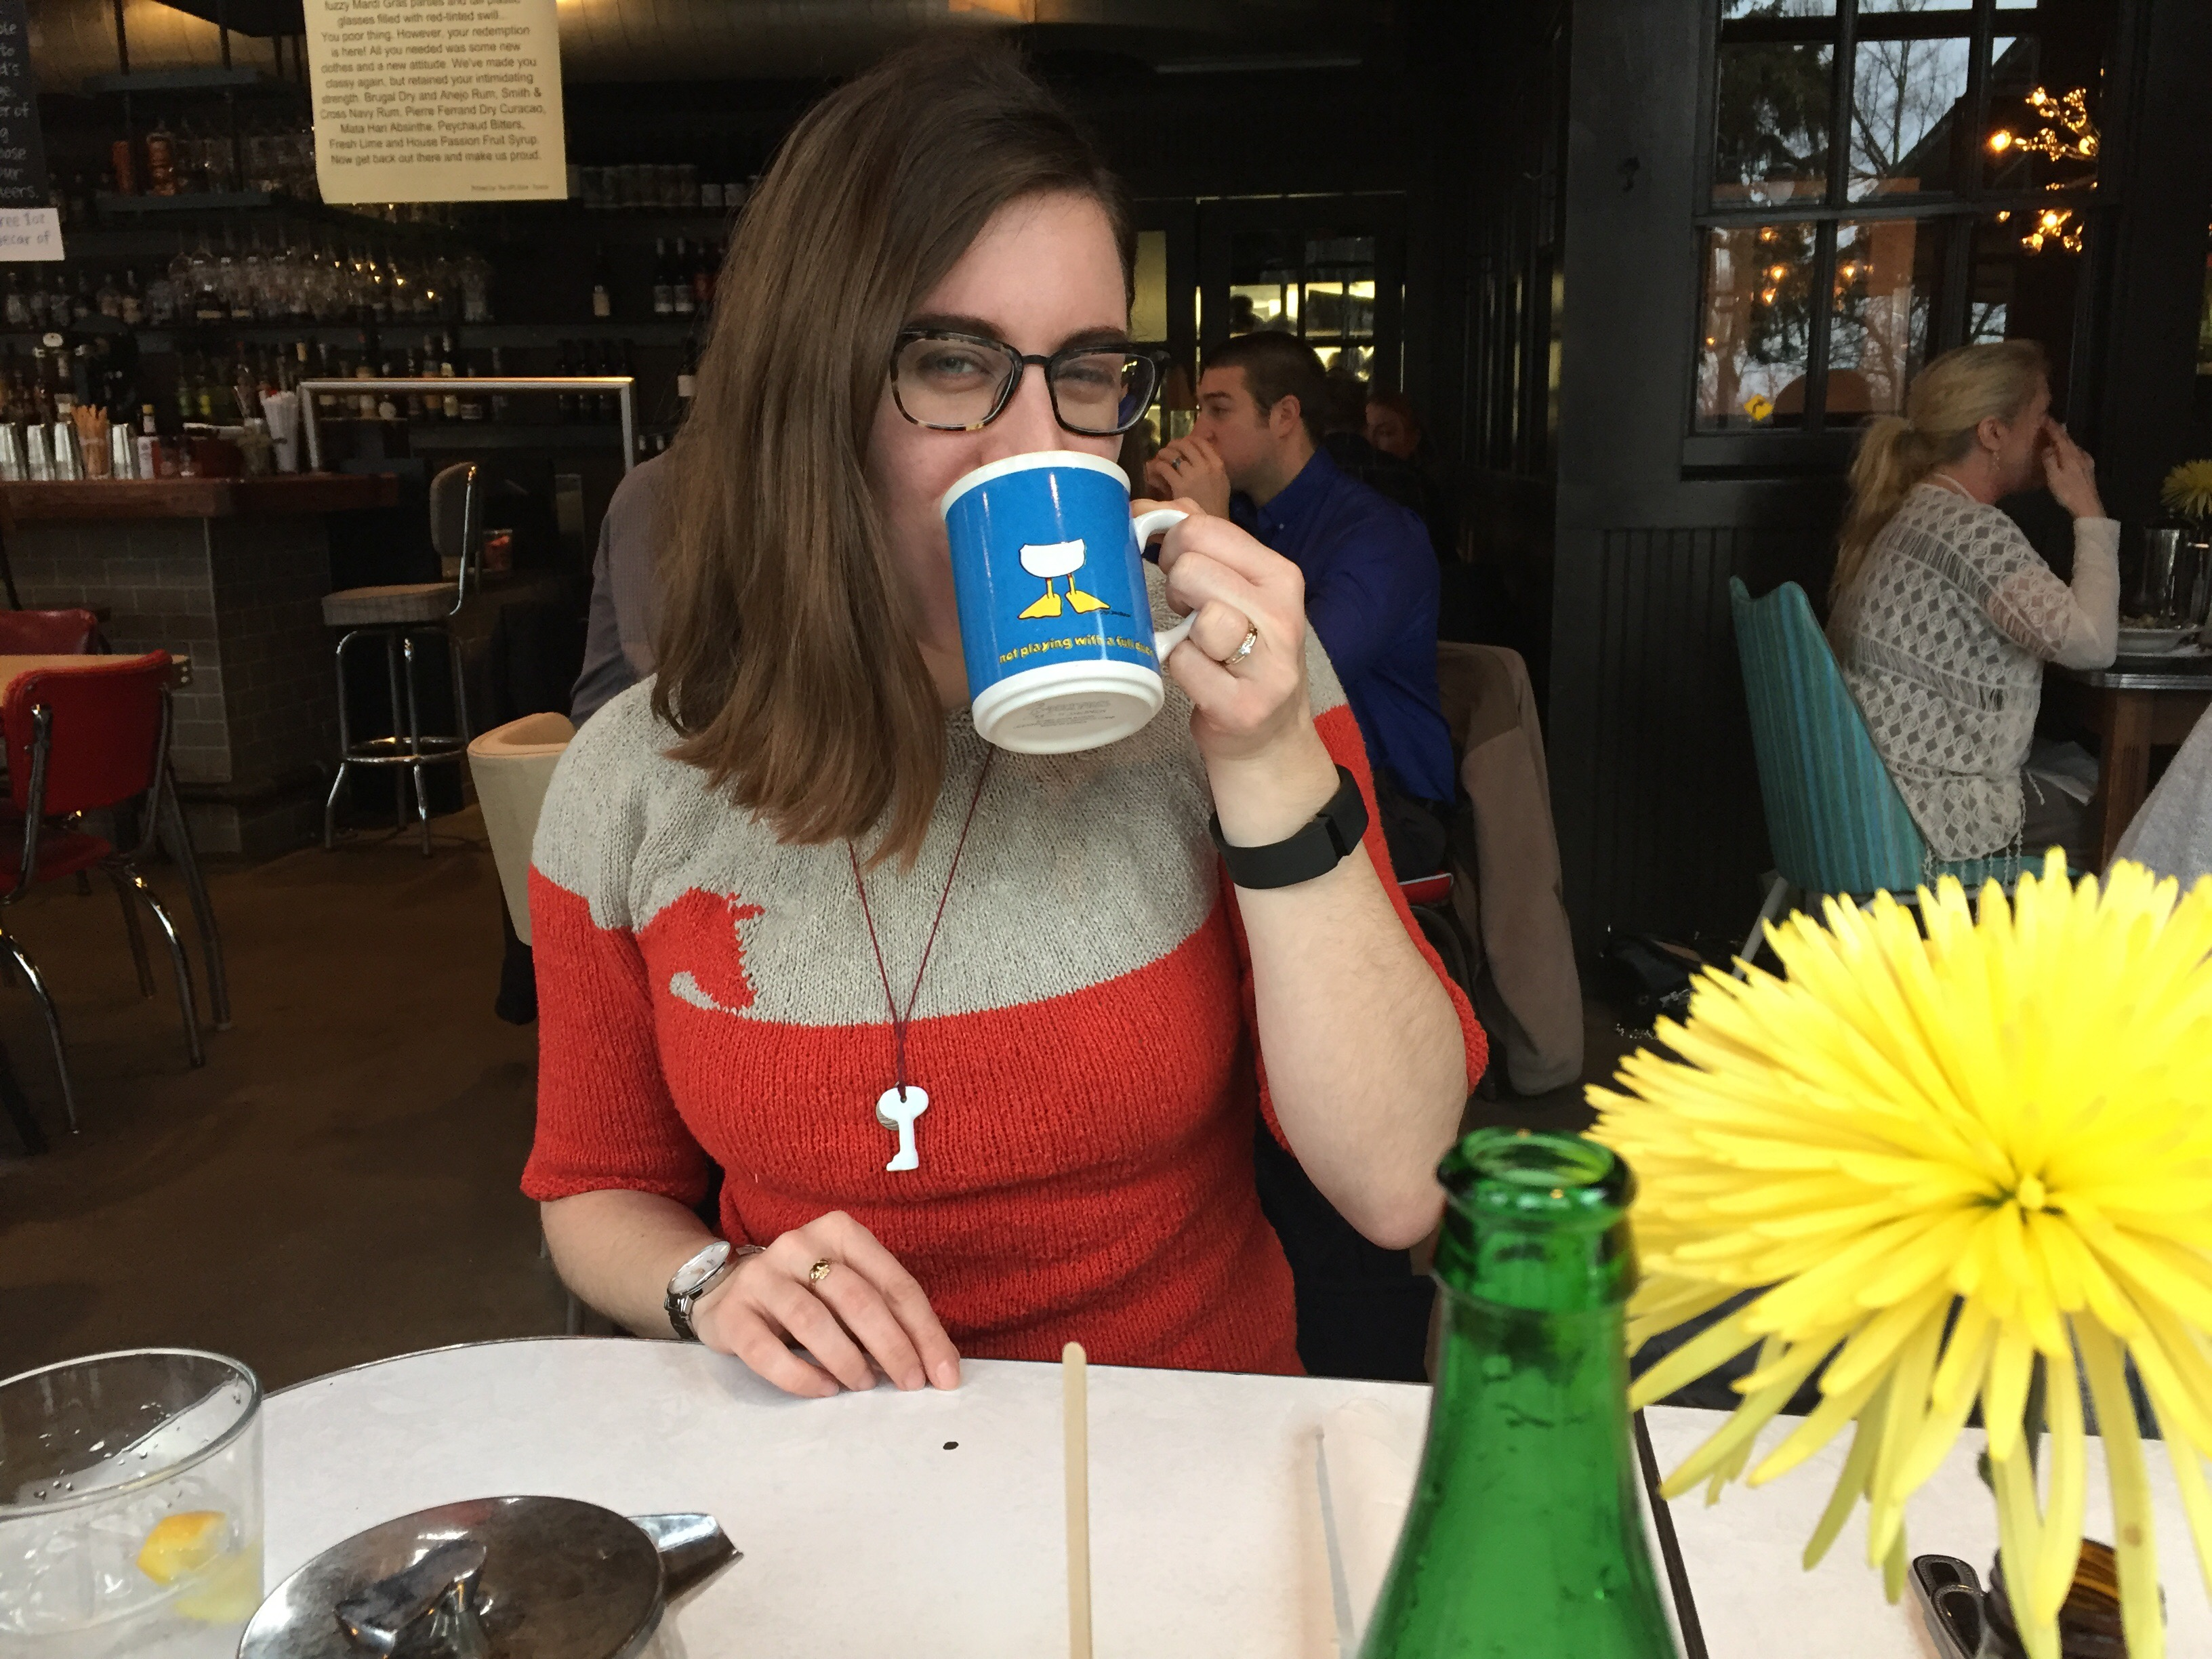 Woman wearing a Lonely Souls sweater and drinking a cup of coffee